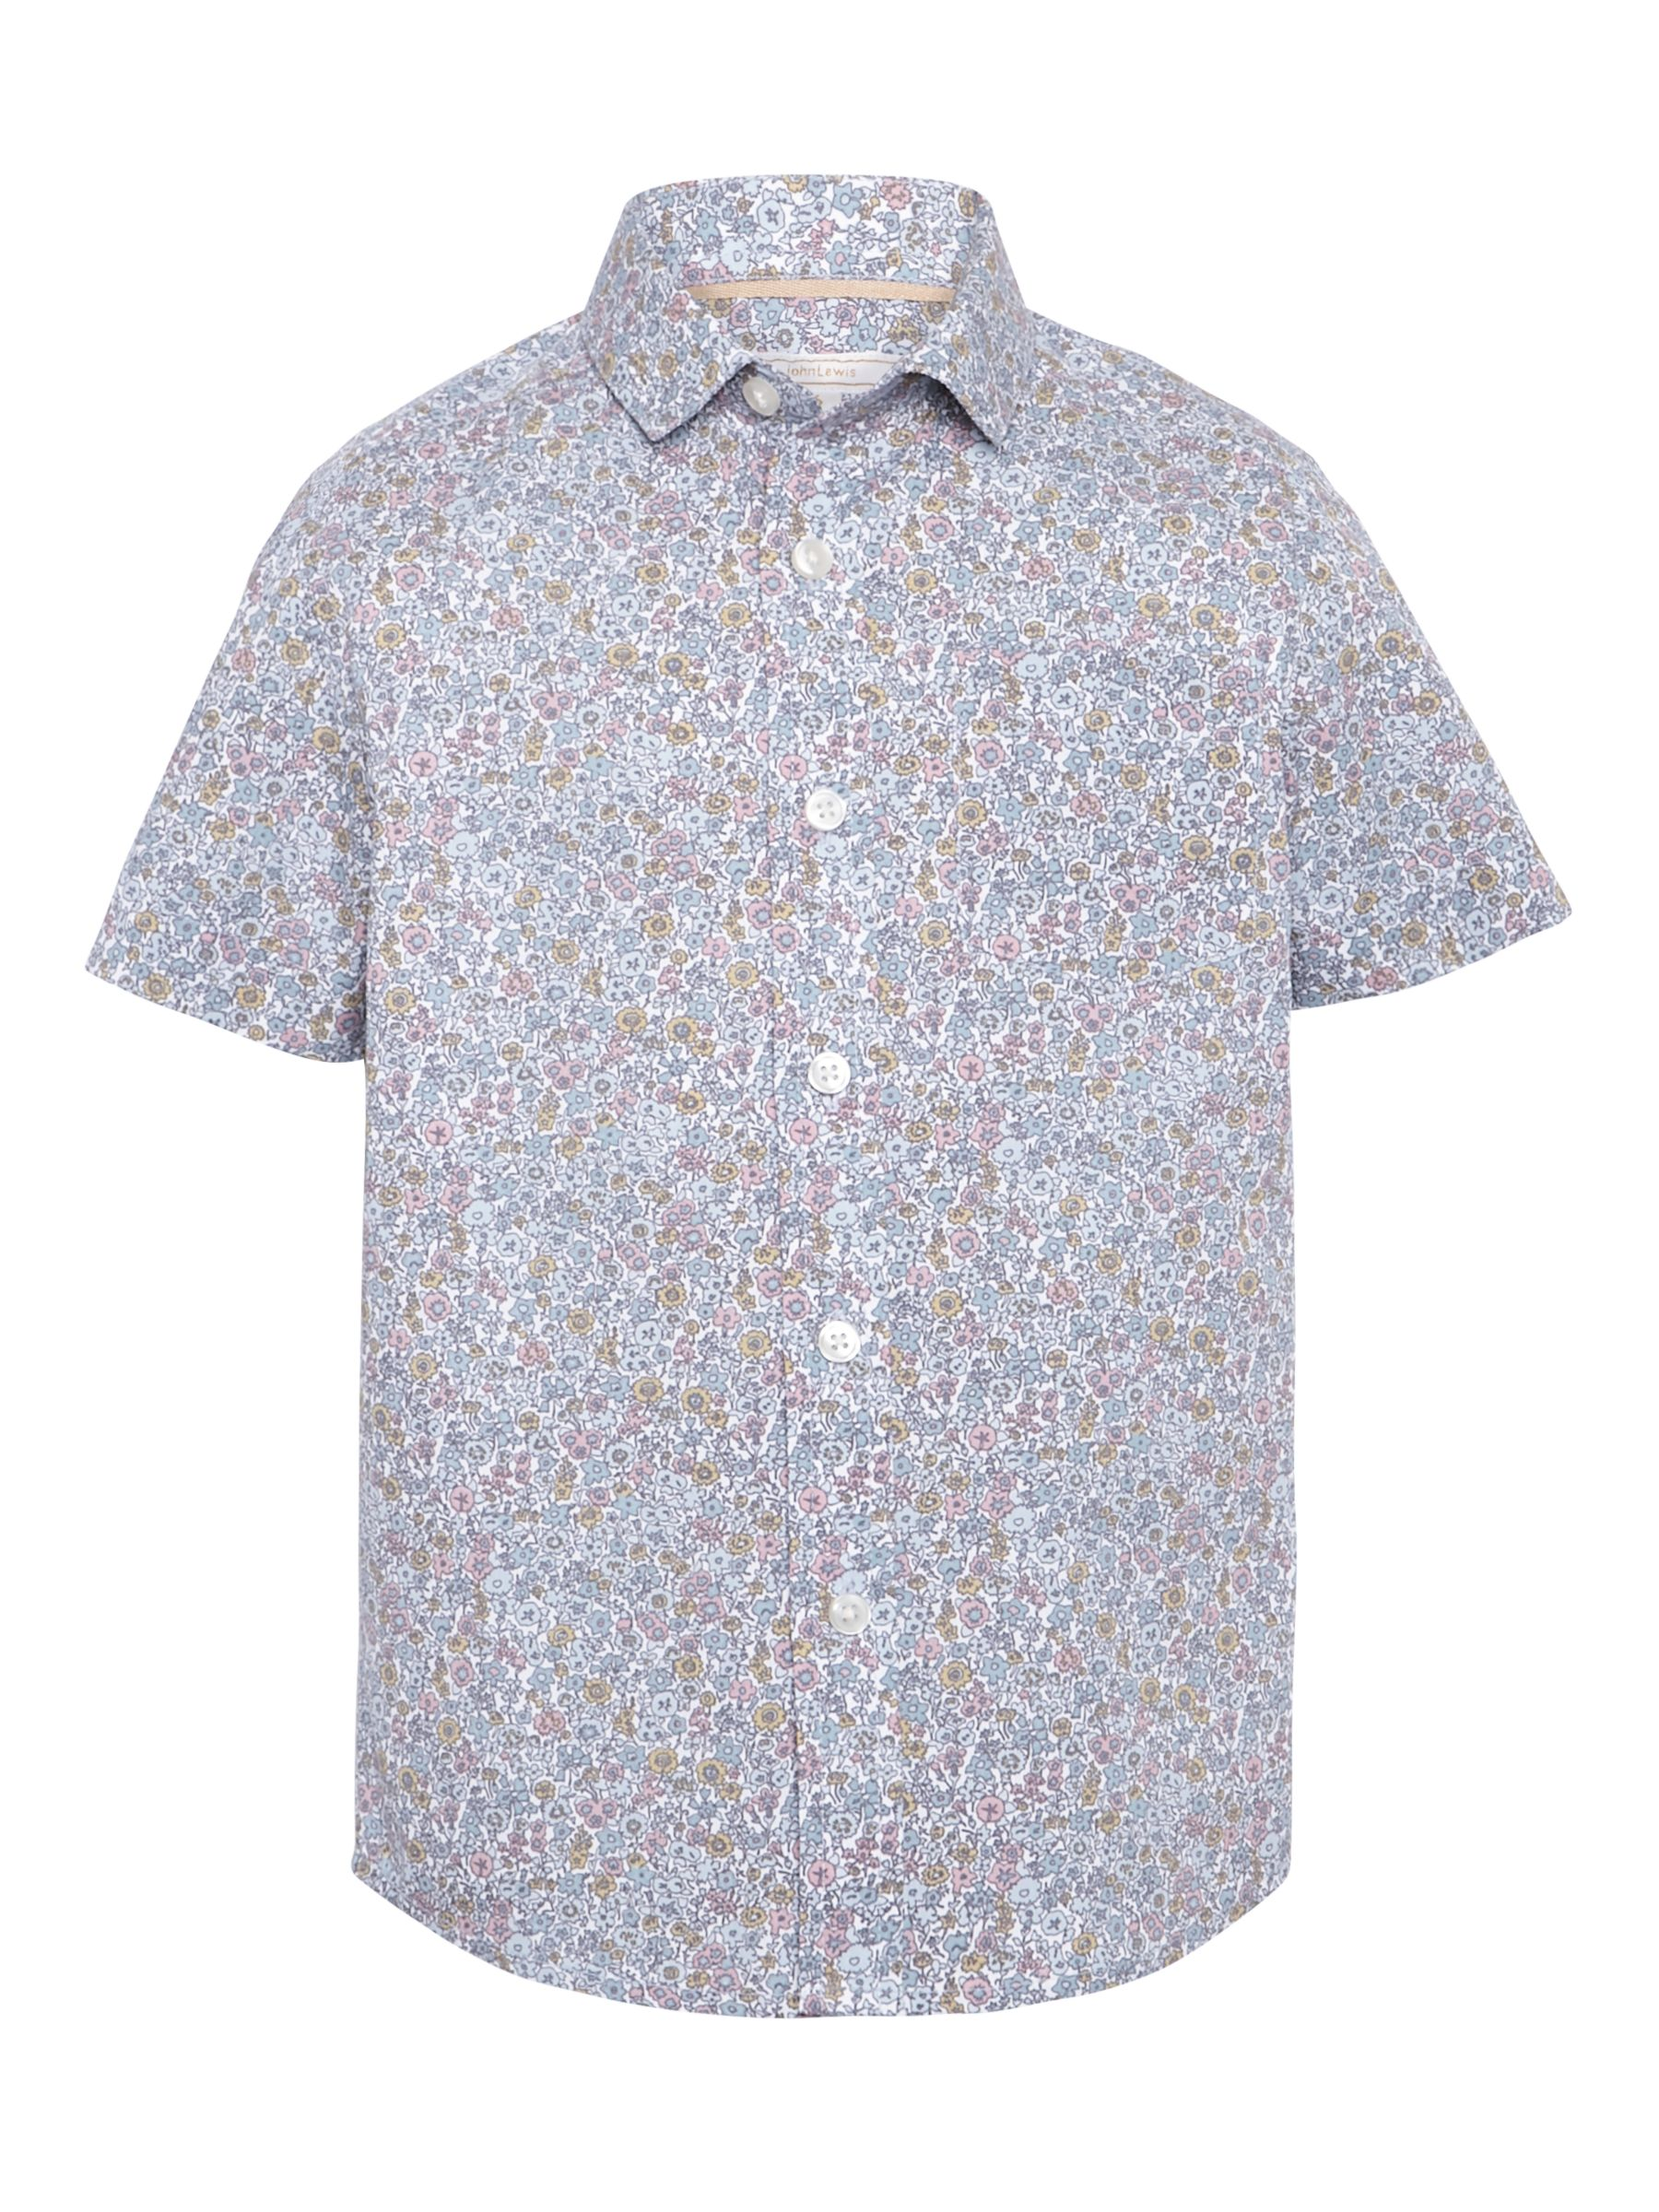 John Lewis Heirloom Collection John Lewis Heirloom Collection Boys' Floral Shirt, Multi